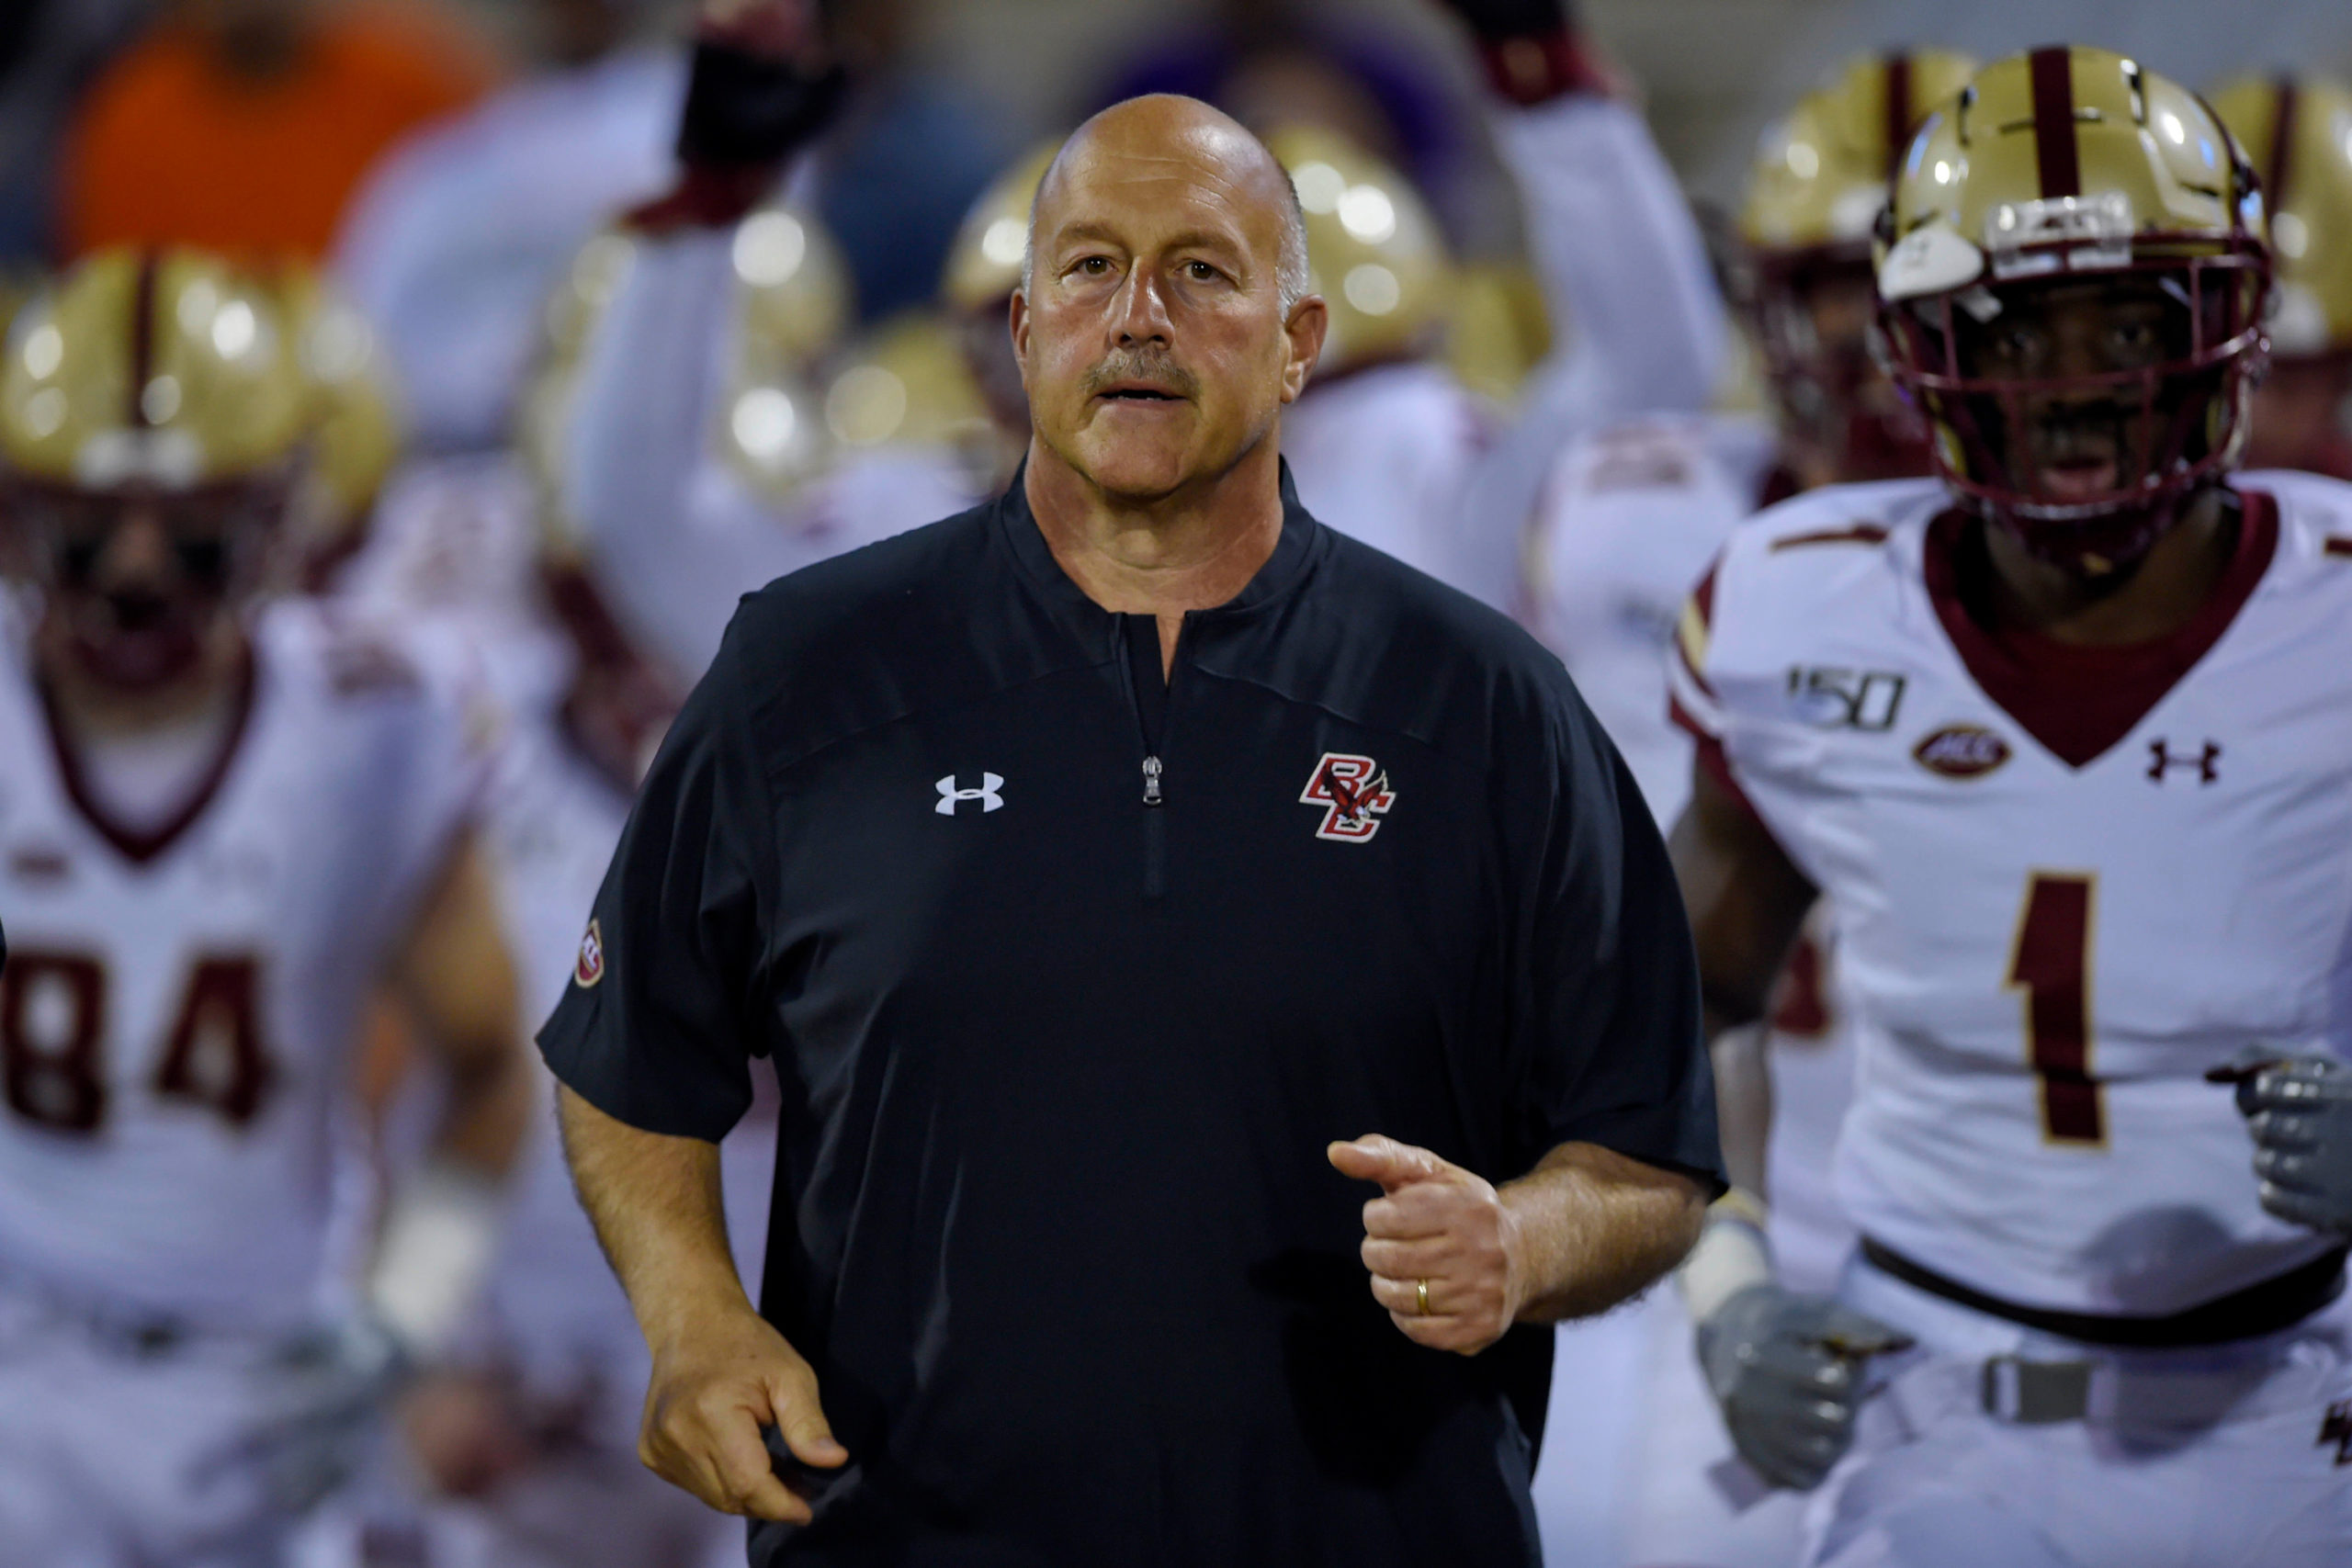 In this Oct. 26, 2019 file photo Boston College head coach Steve Addazio leads his team onto the field before the start of an NCAA college football game against Clemson in Clemson, S.C.